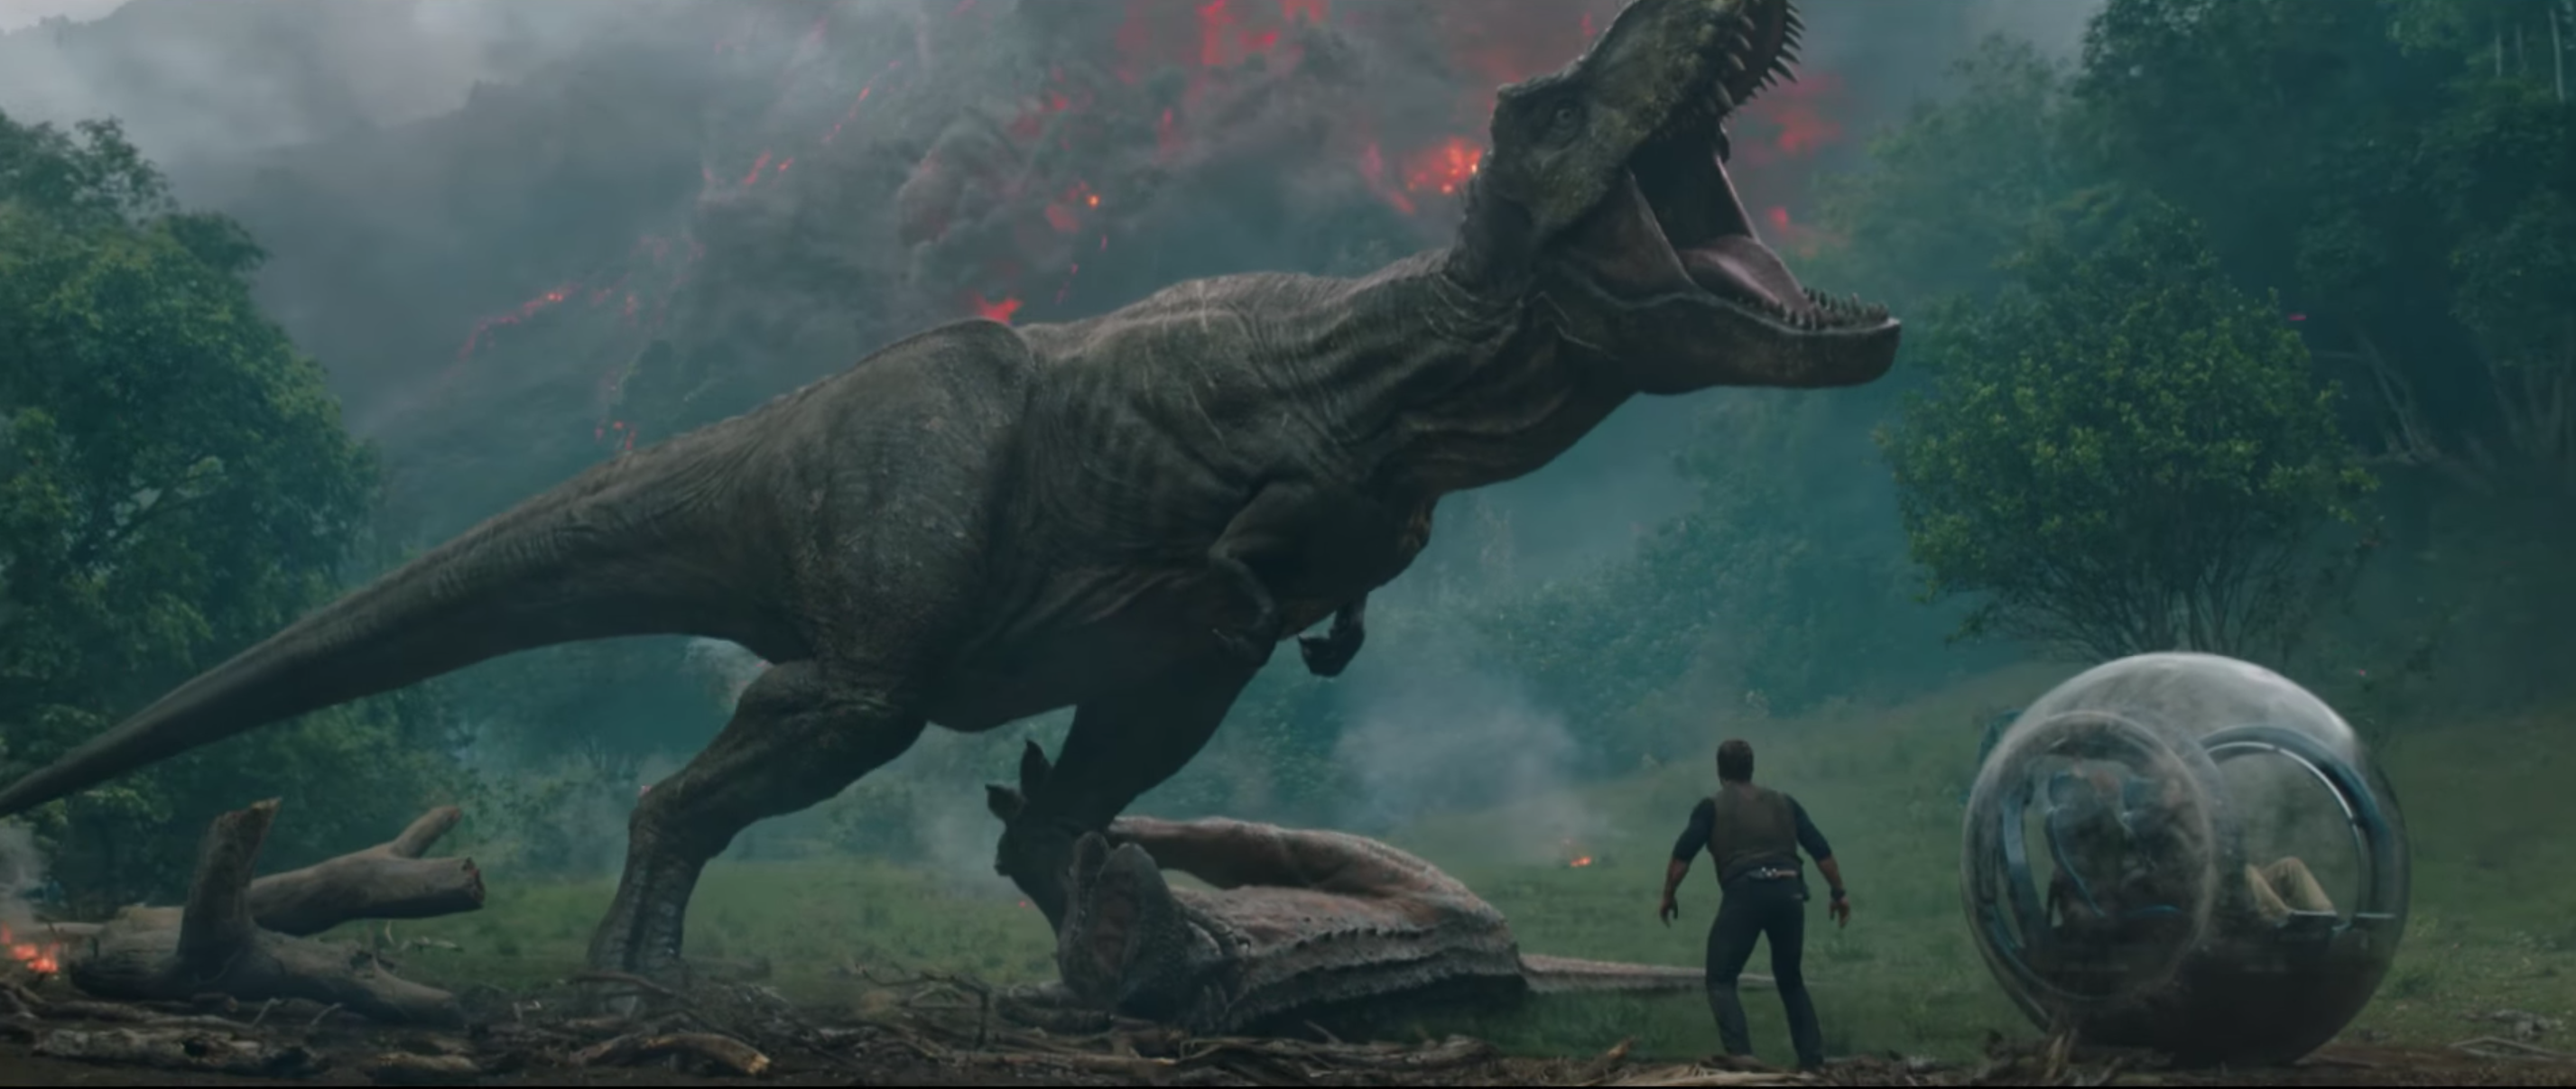 Jurassic World 2 unveils opening sequence